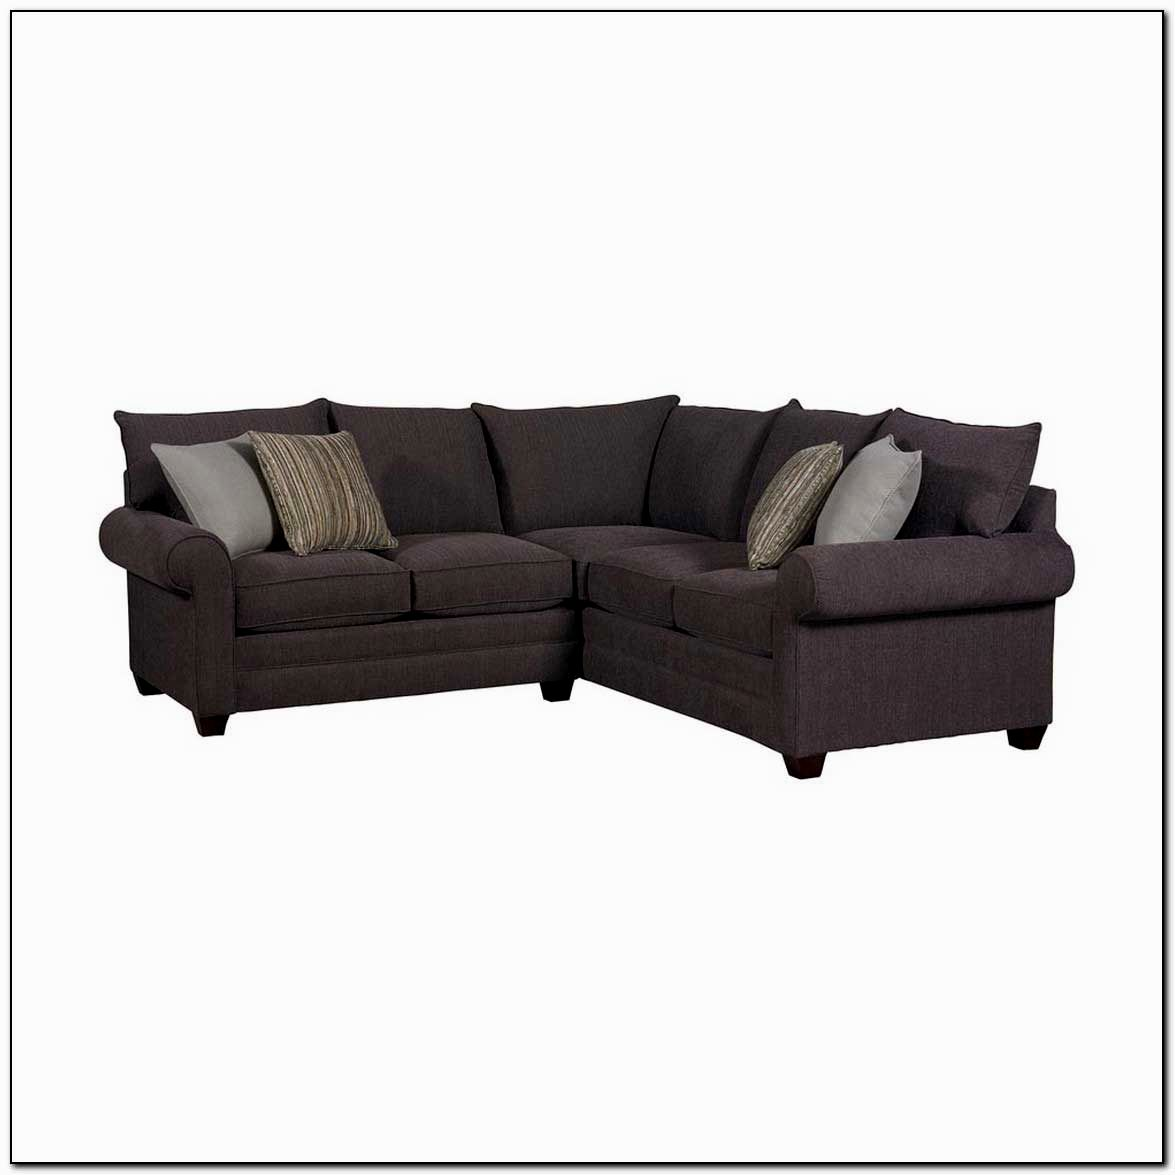 latest sectional sofa for small living room pattern-Top Sectional sofa for Small Living Room Ideas